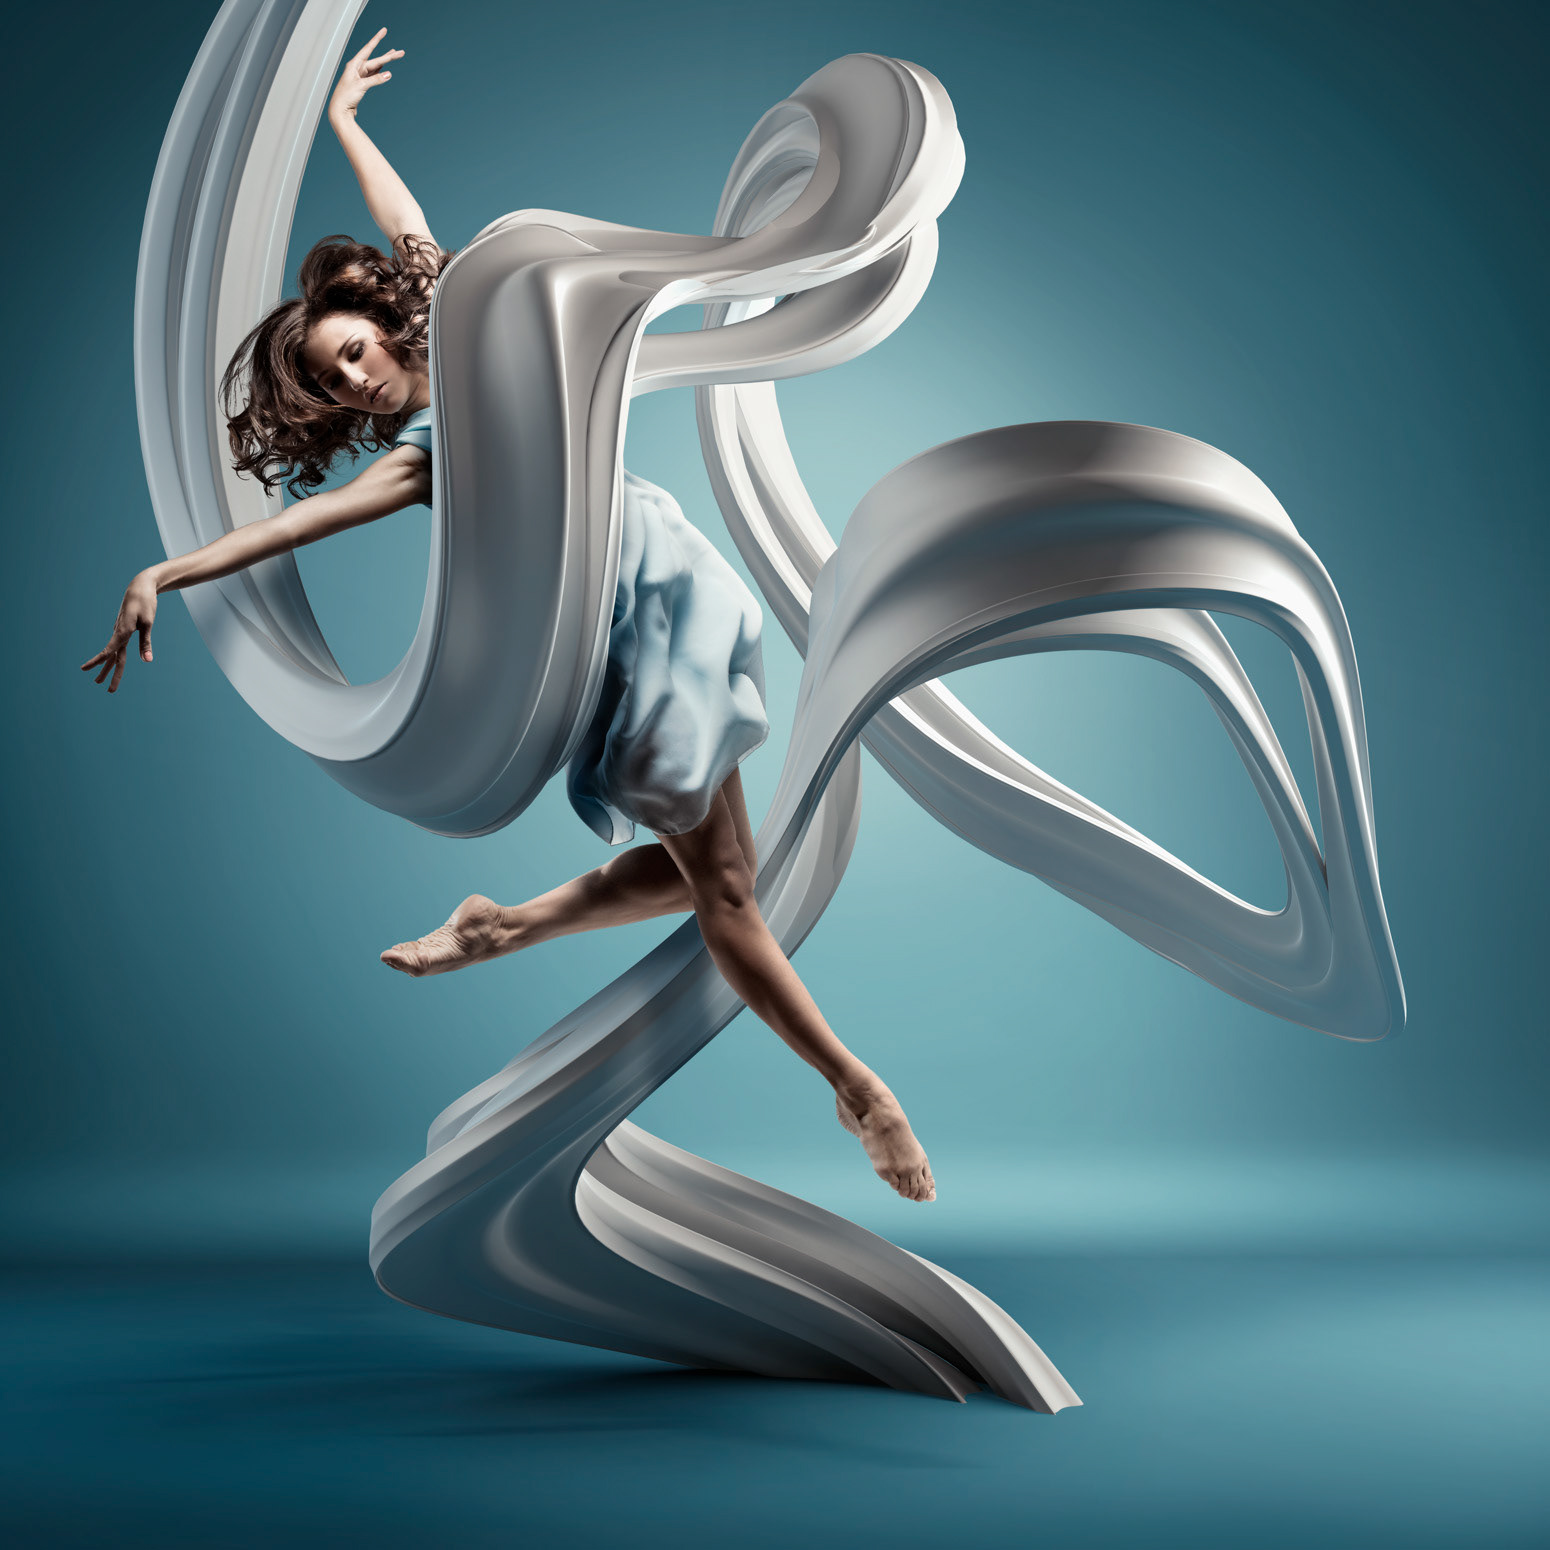 Mike Campau: Digital Artist - Combining Photography and ...